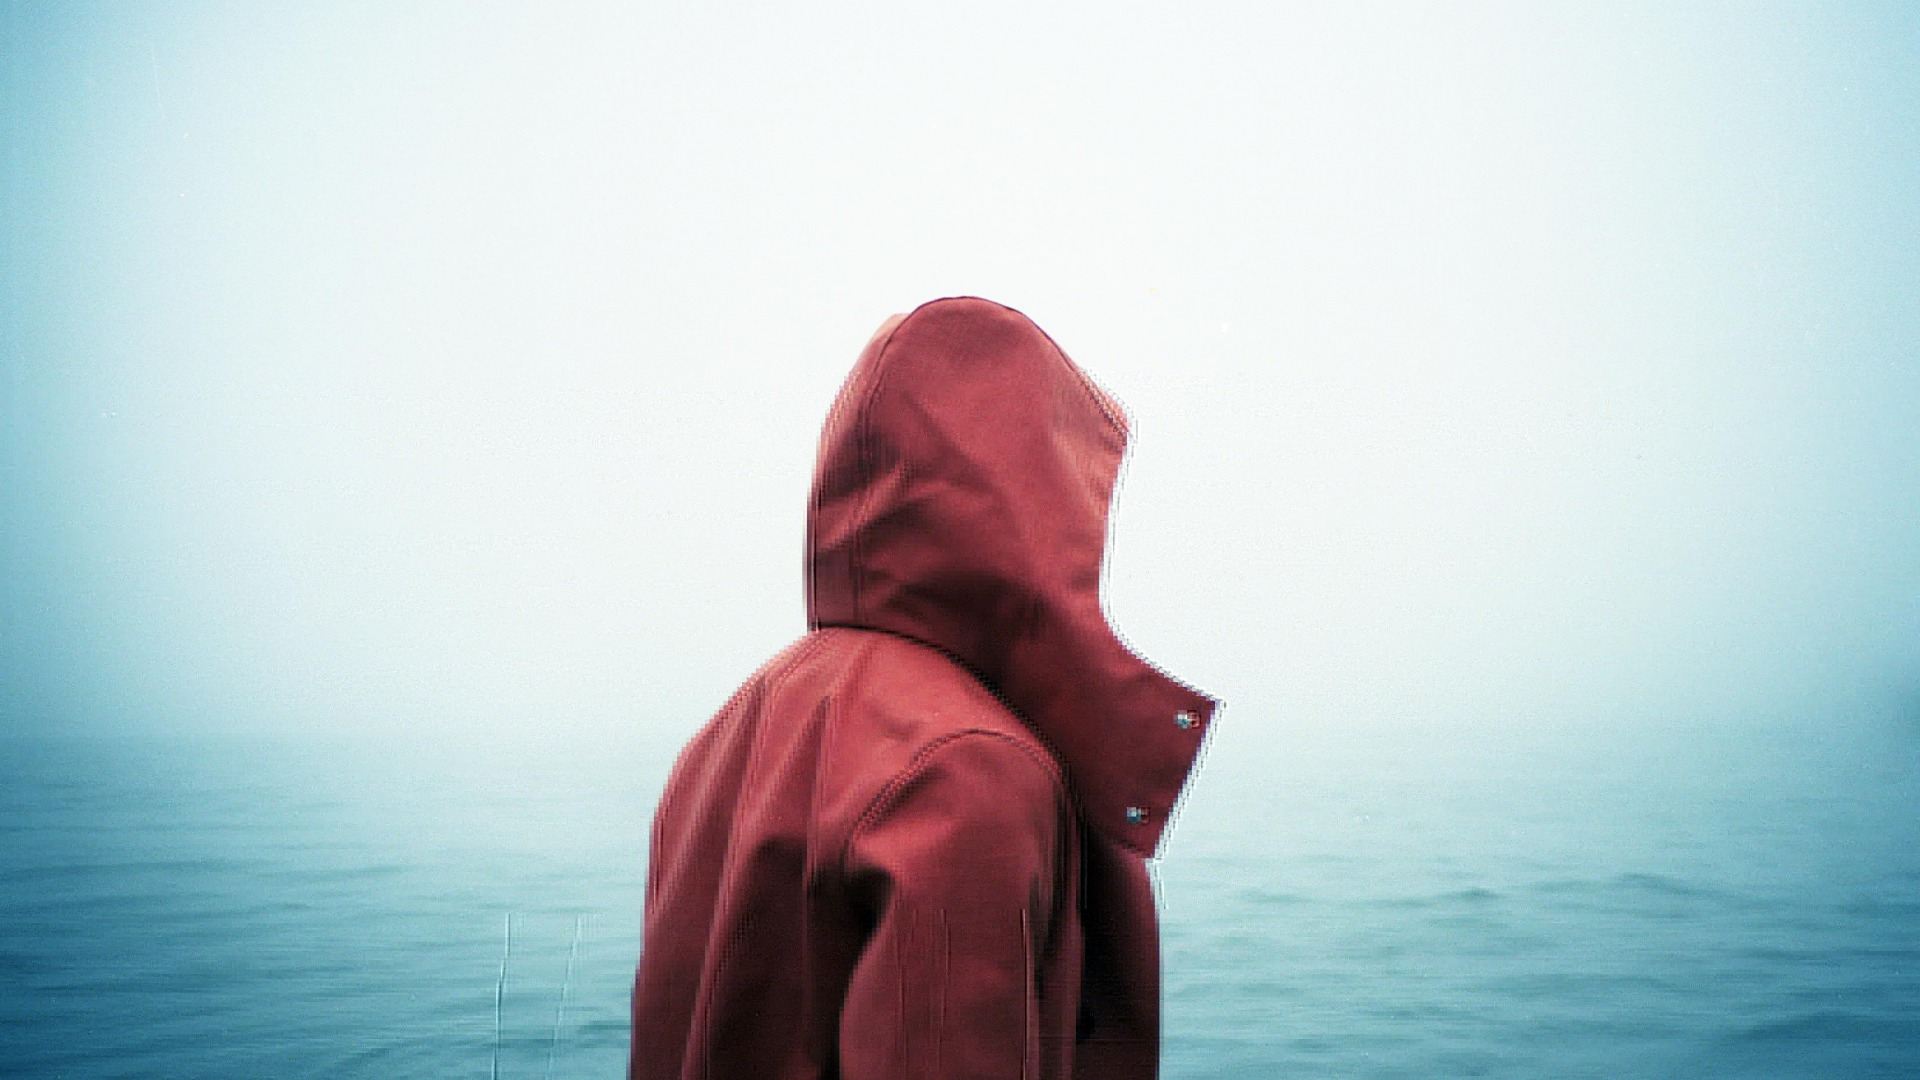 hood, person, fog, sea